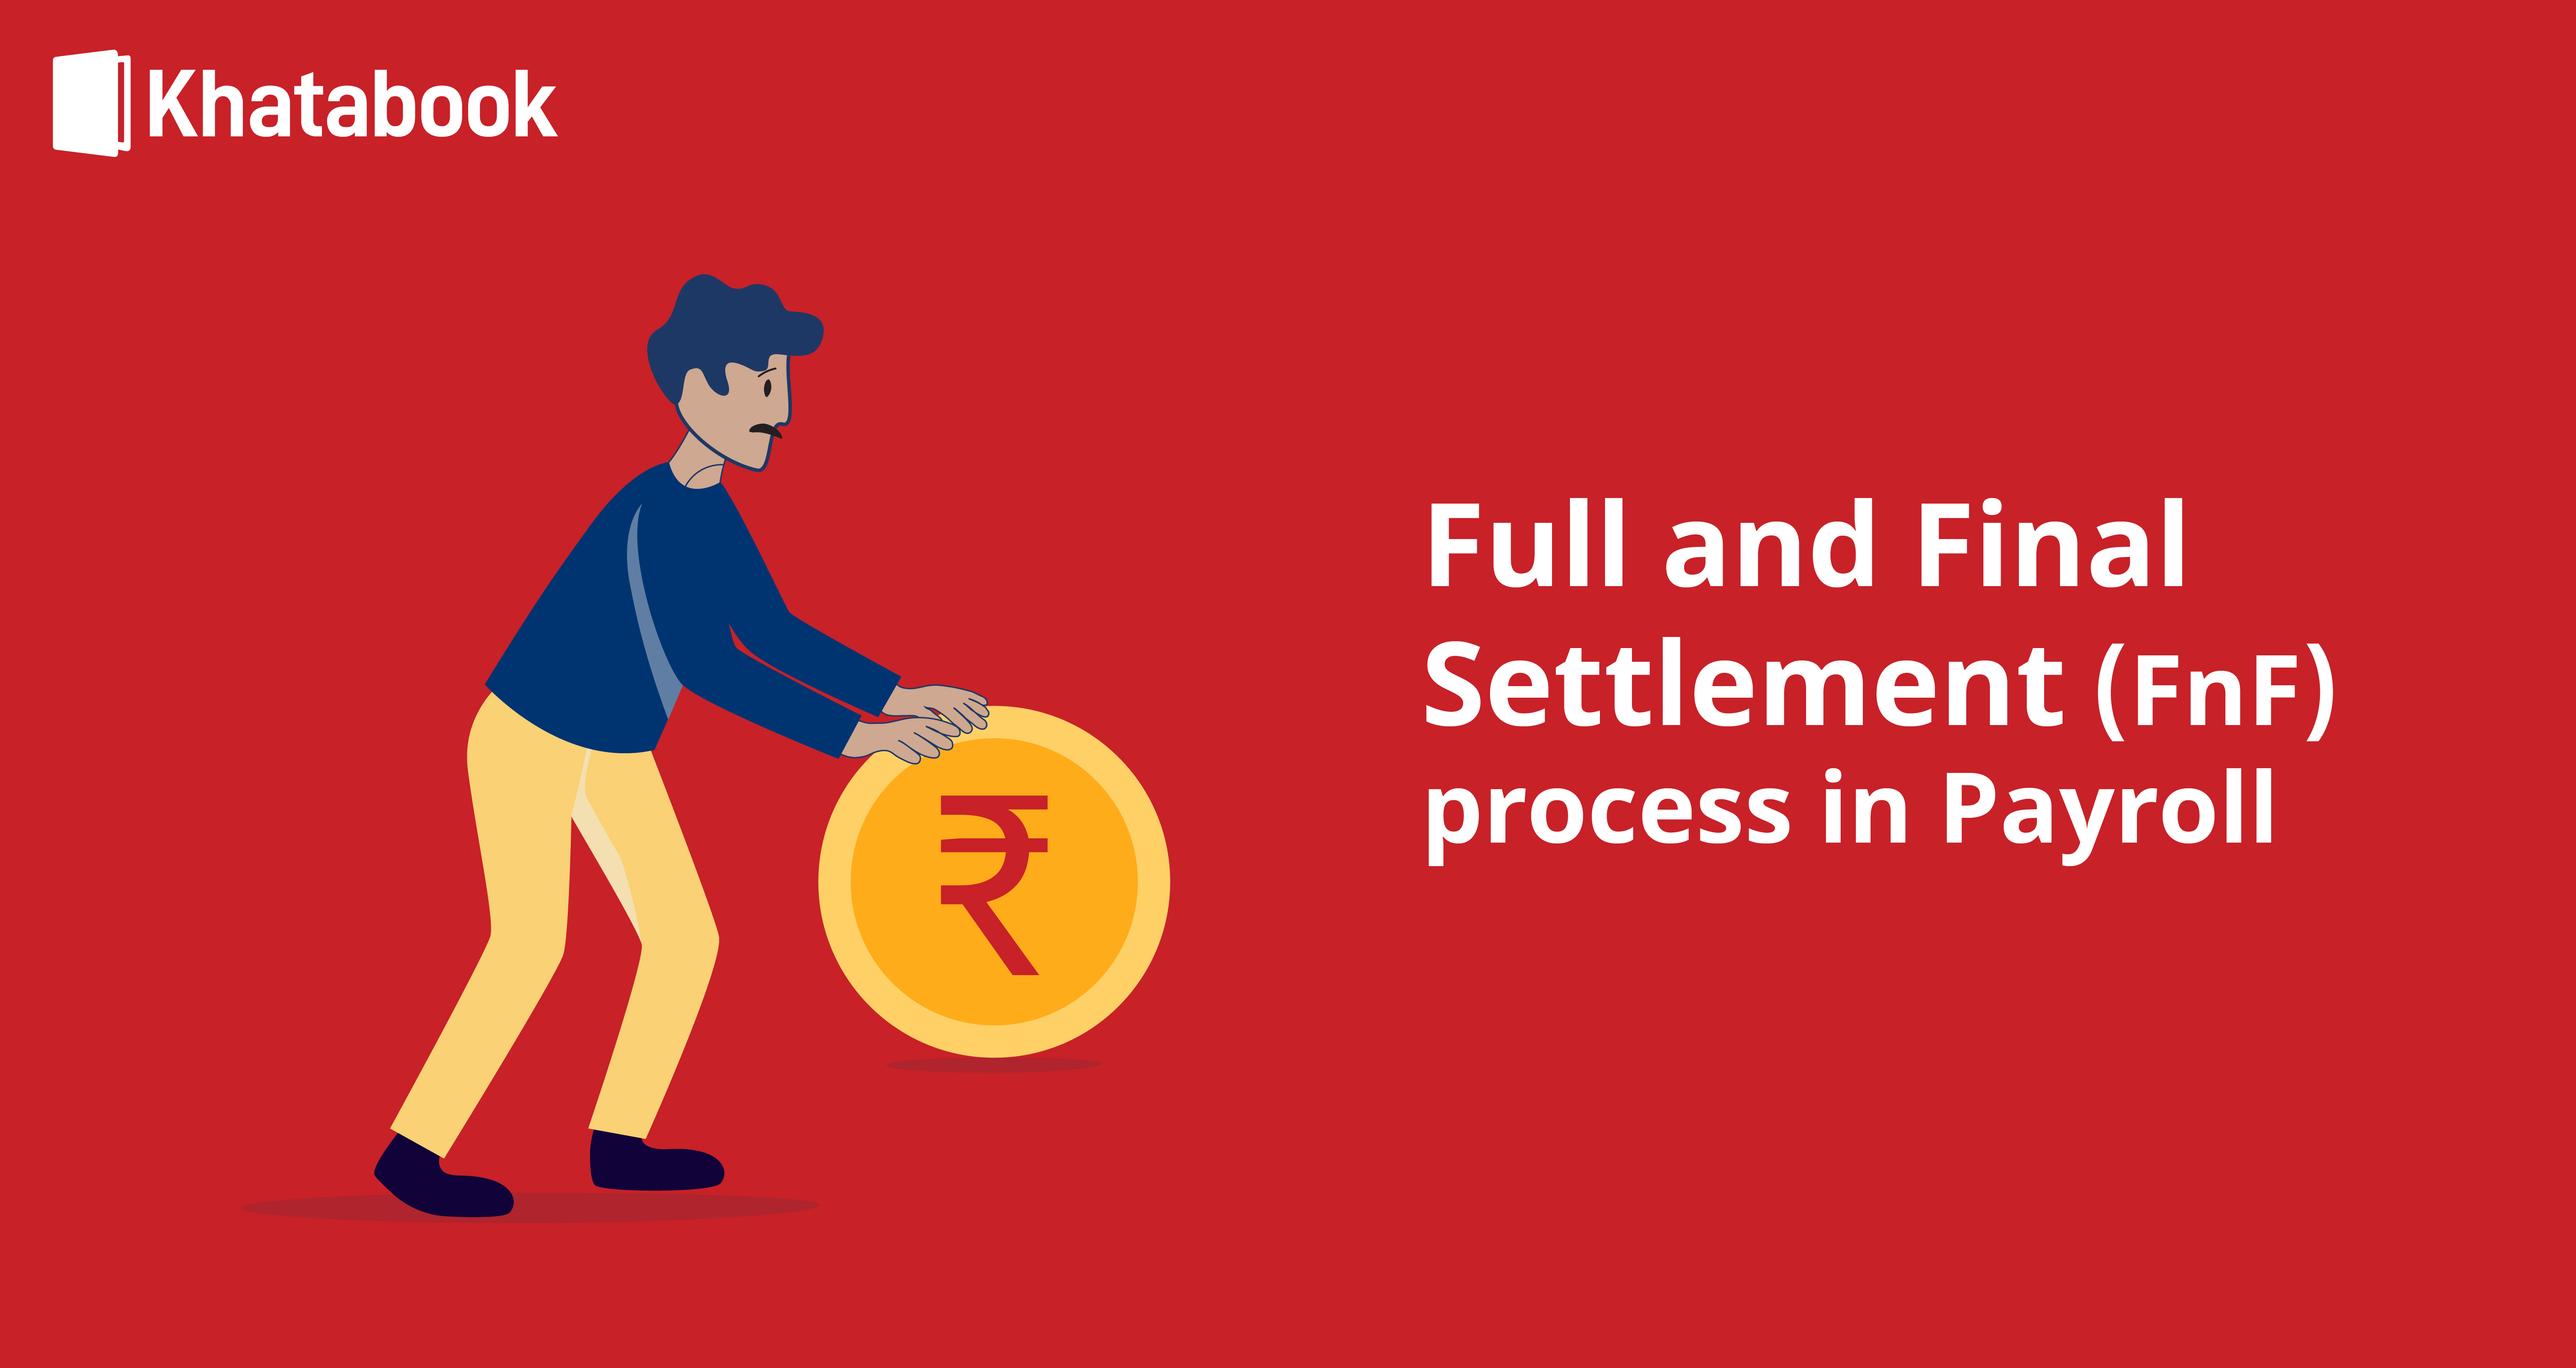 What is Full and Final Settlement Process in Payroll